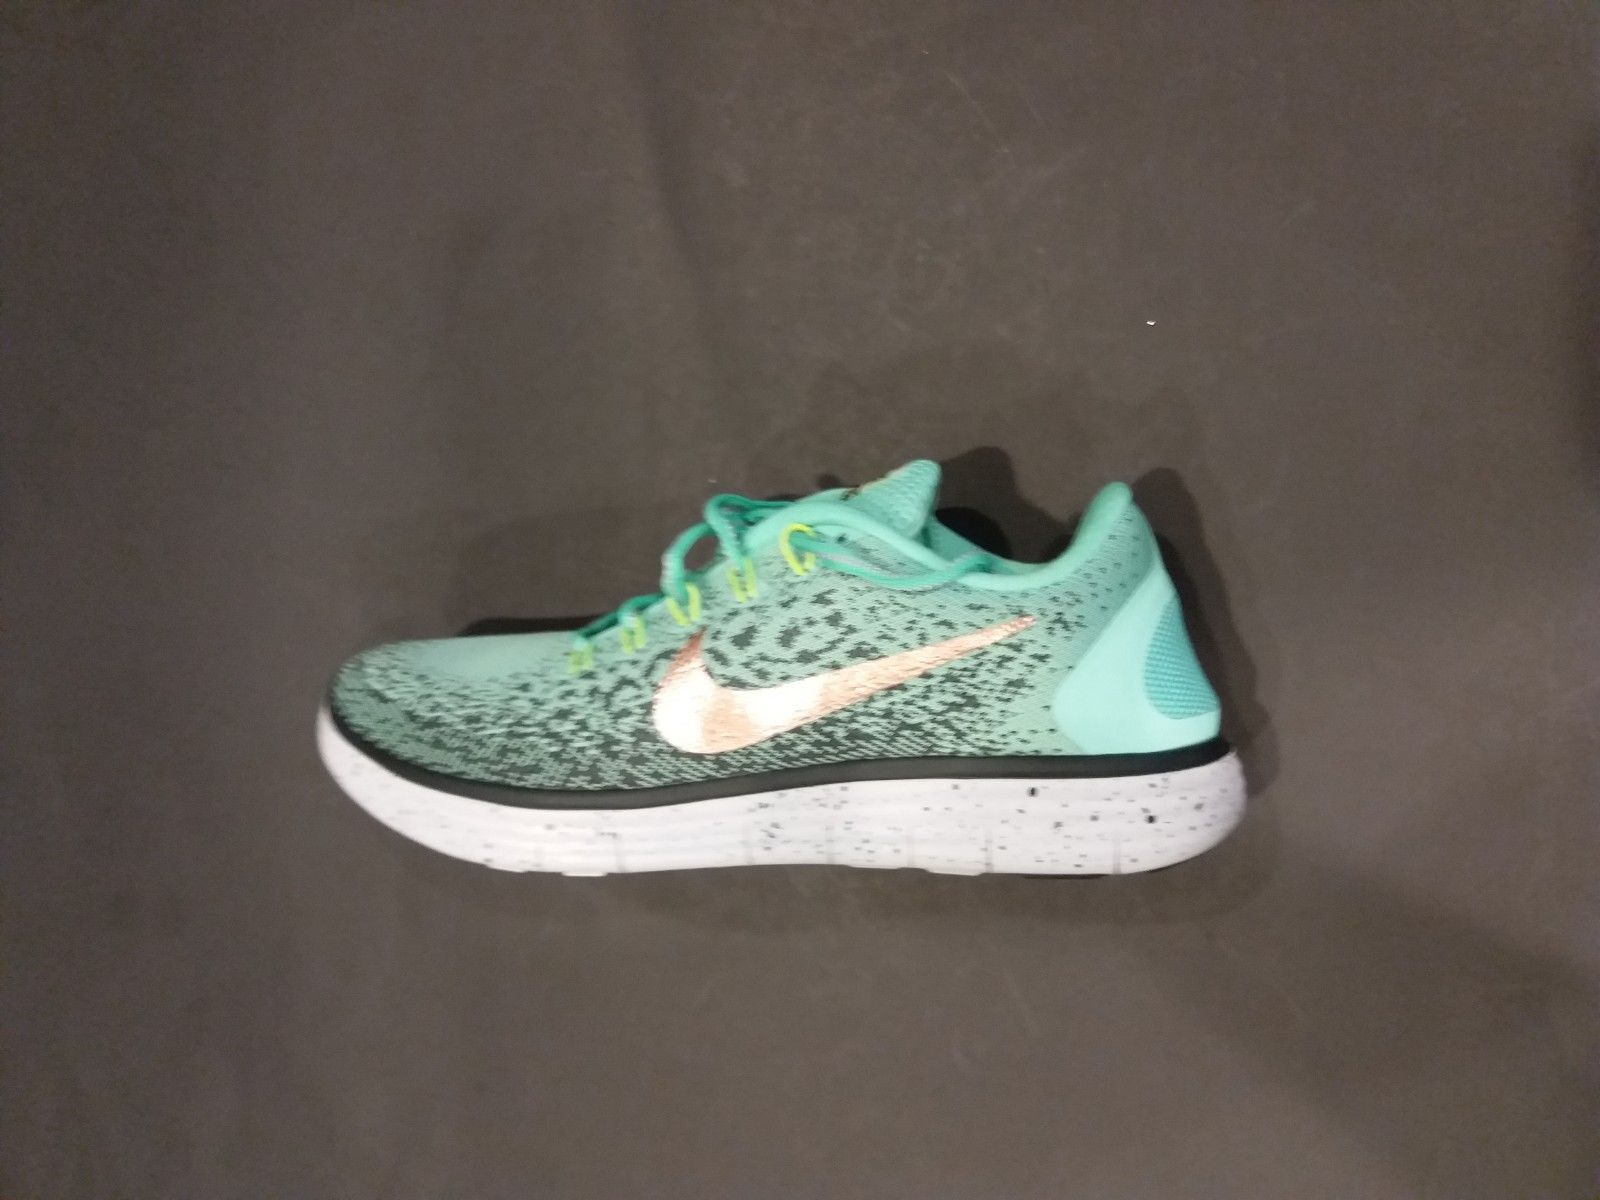 bfb872efc128c 57. 57. Previous. New Womens Nike Free RN Distance Shield Shoes in Green  Glow 849661 300 ...